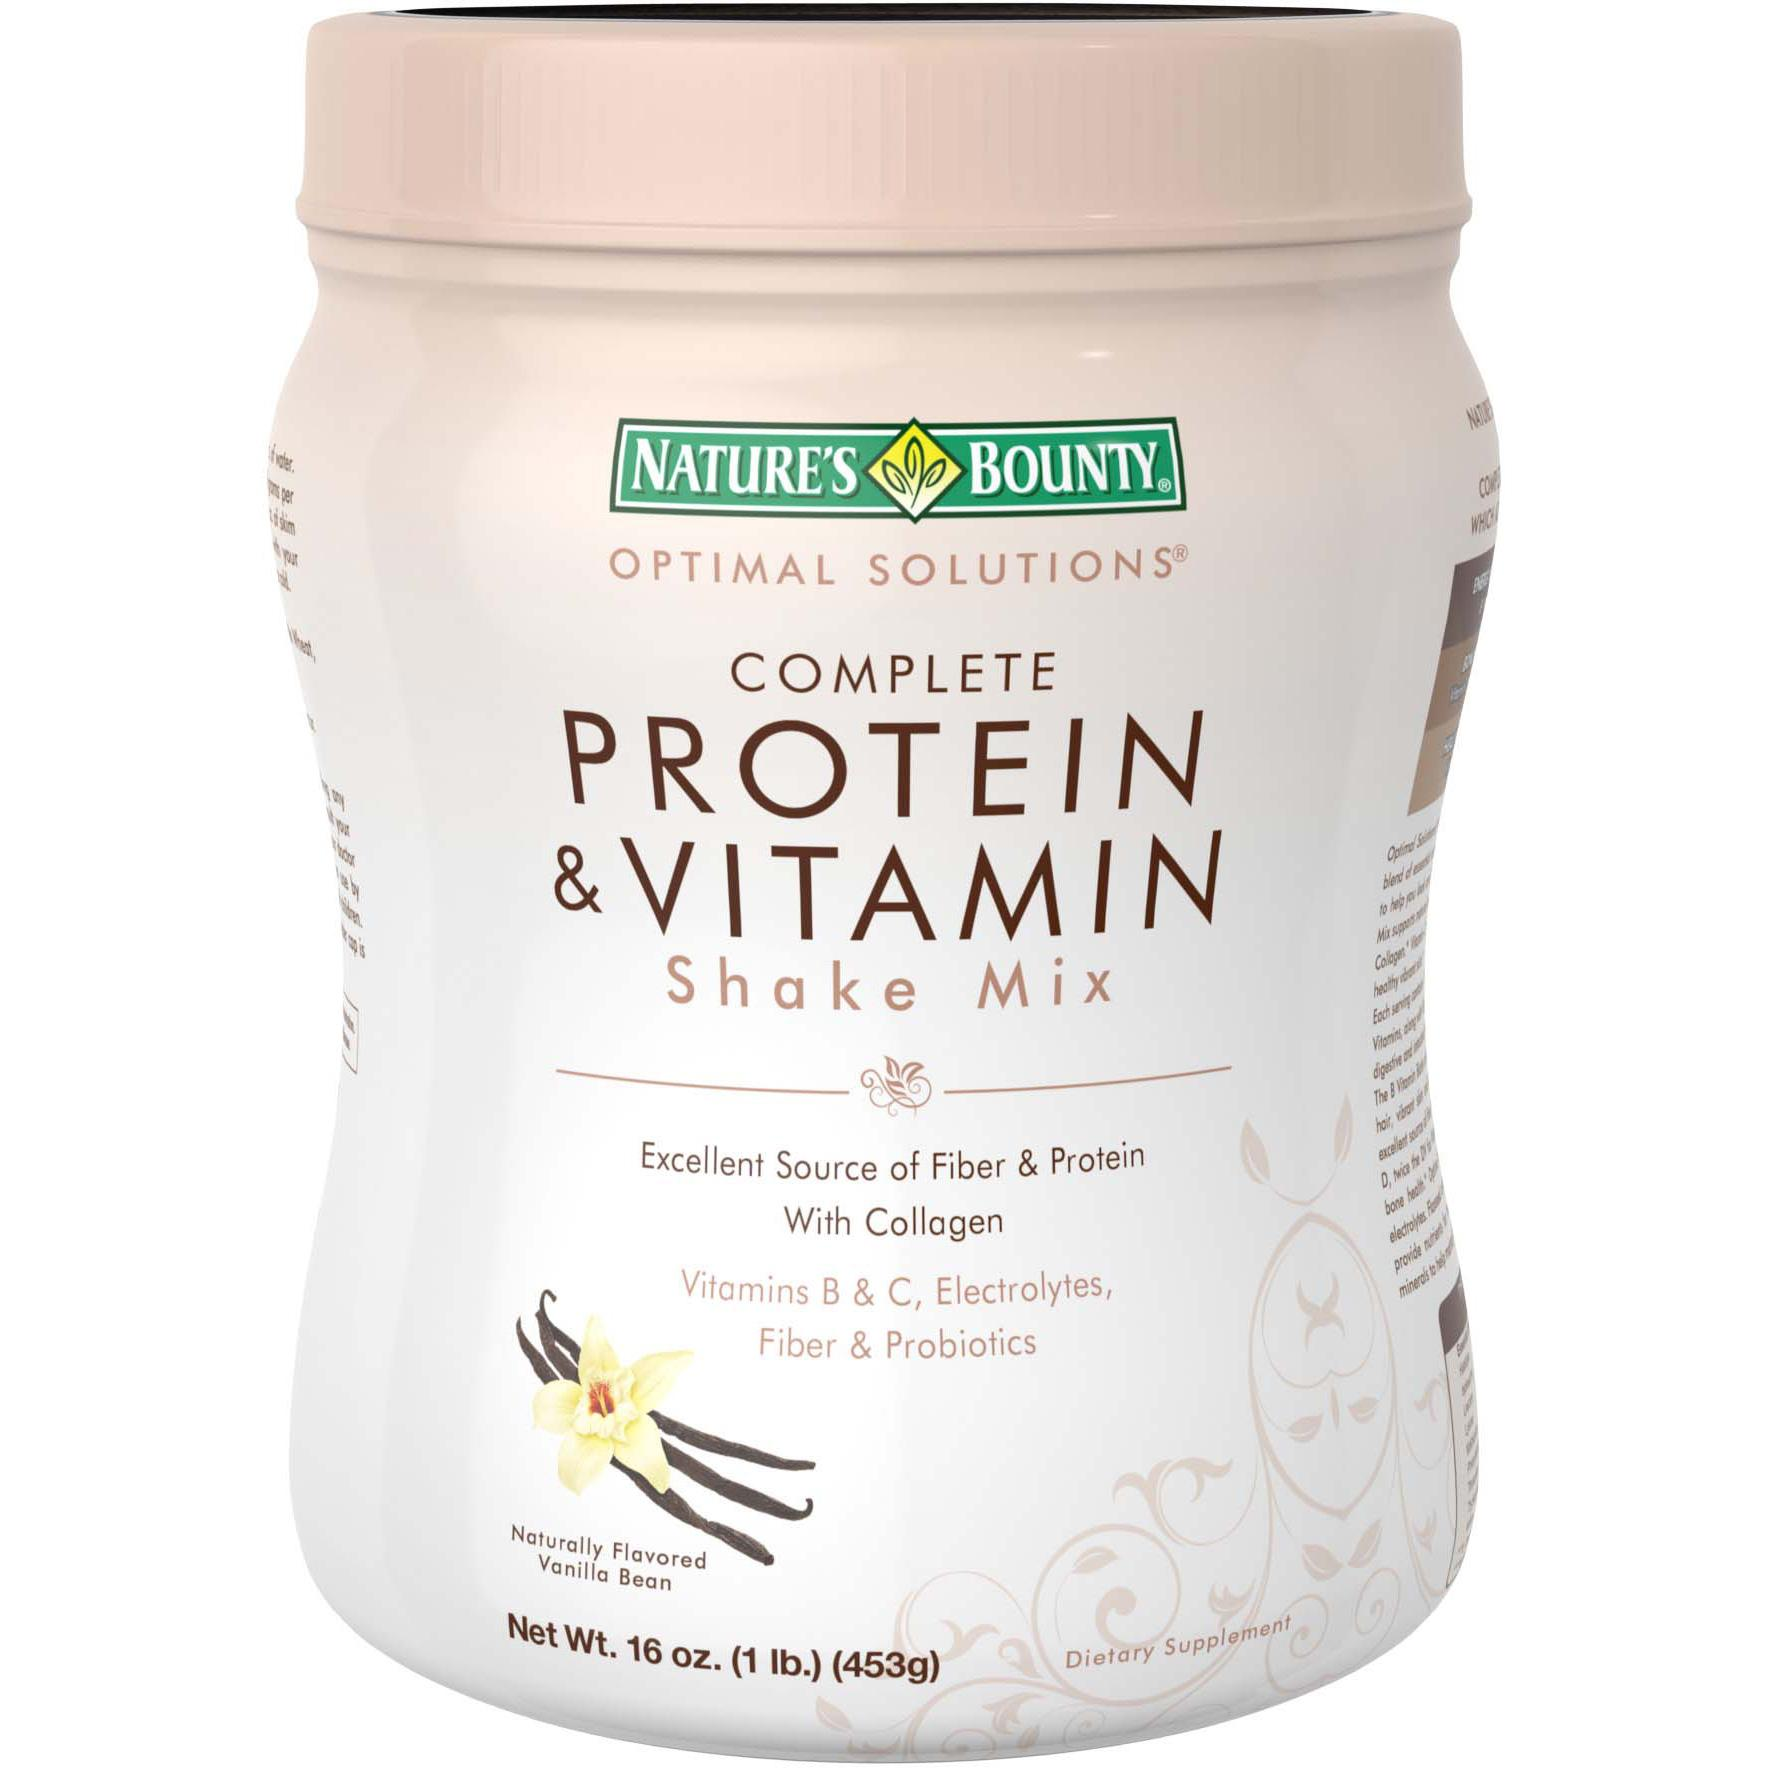 Natures Bounty Optimal Solutions Hair, Skin and Nails Gummies, 80 Count. Nature's Bounty Optimal Solutions Complete Protein & Vitamin Shake Mix Chocolate 16 OZ - Buy Packs and SAVE (Pack of 2) by Nature's Bounty. $ $ 37 FREE Shipping on eligible orders. Only 17 left in stock - order soon.